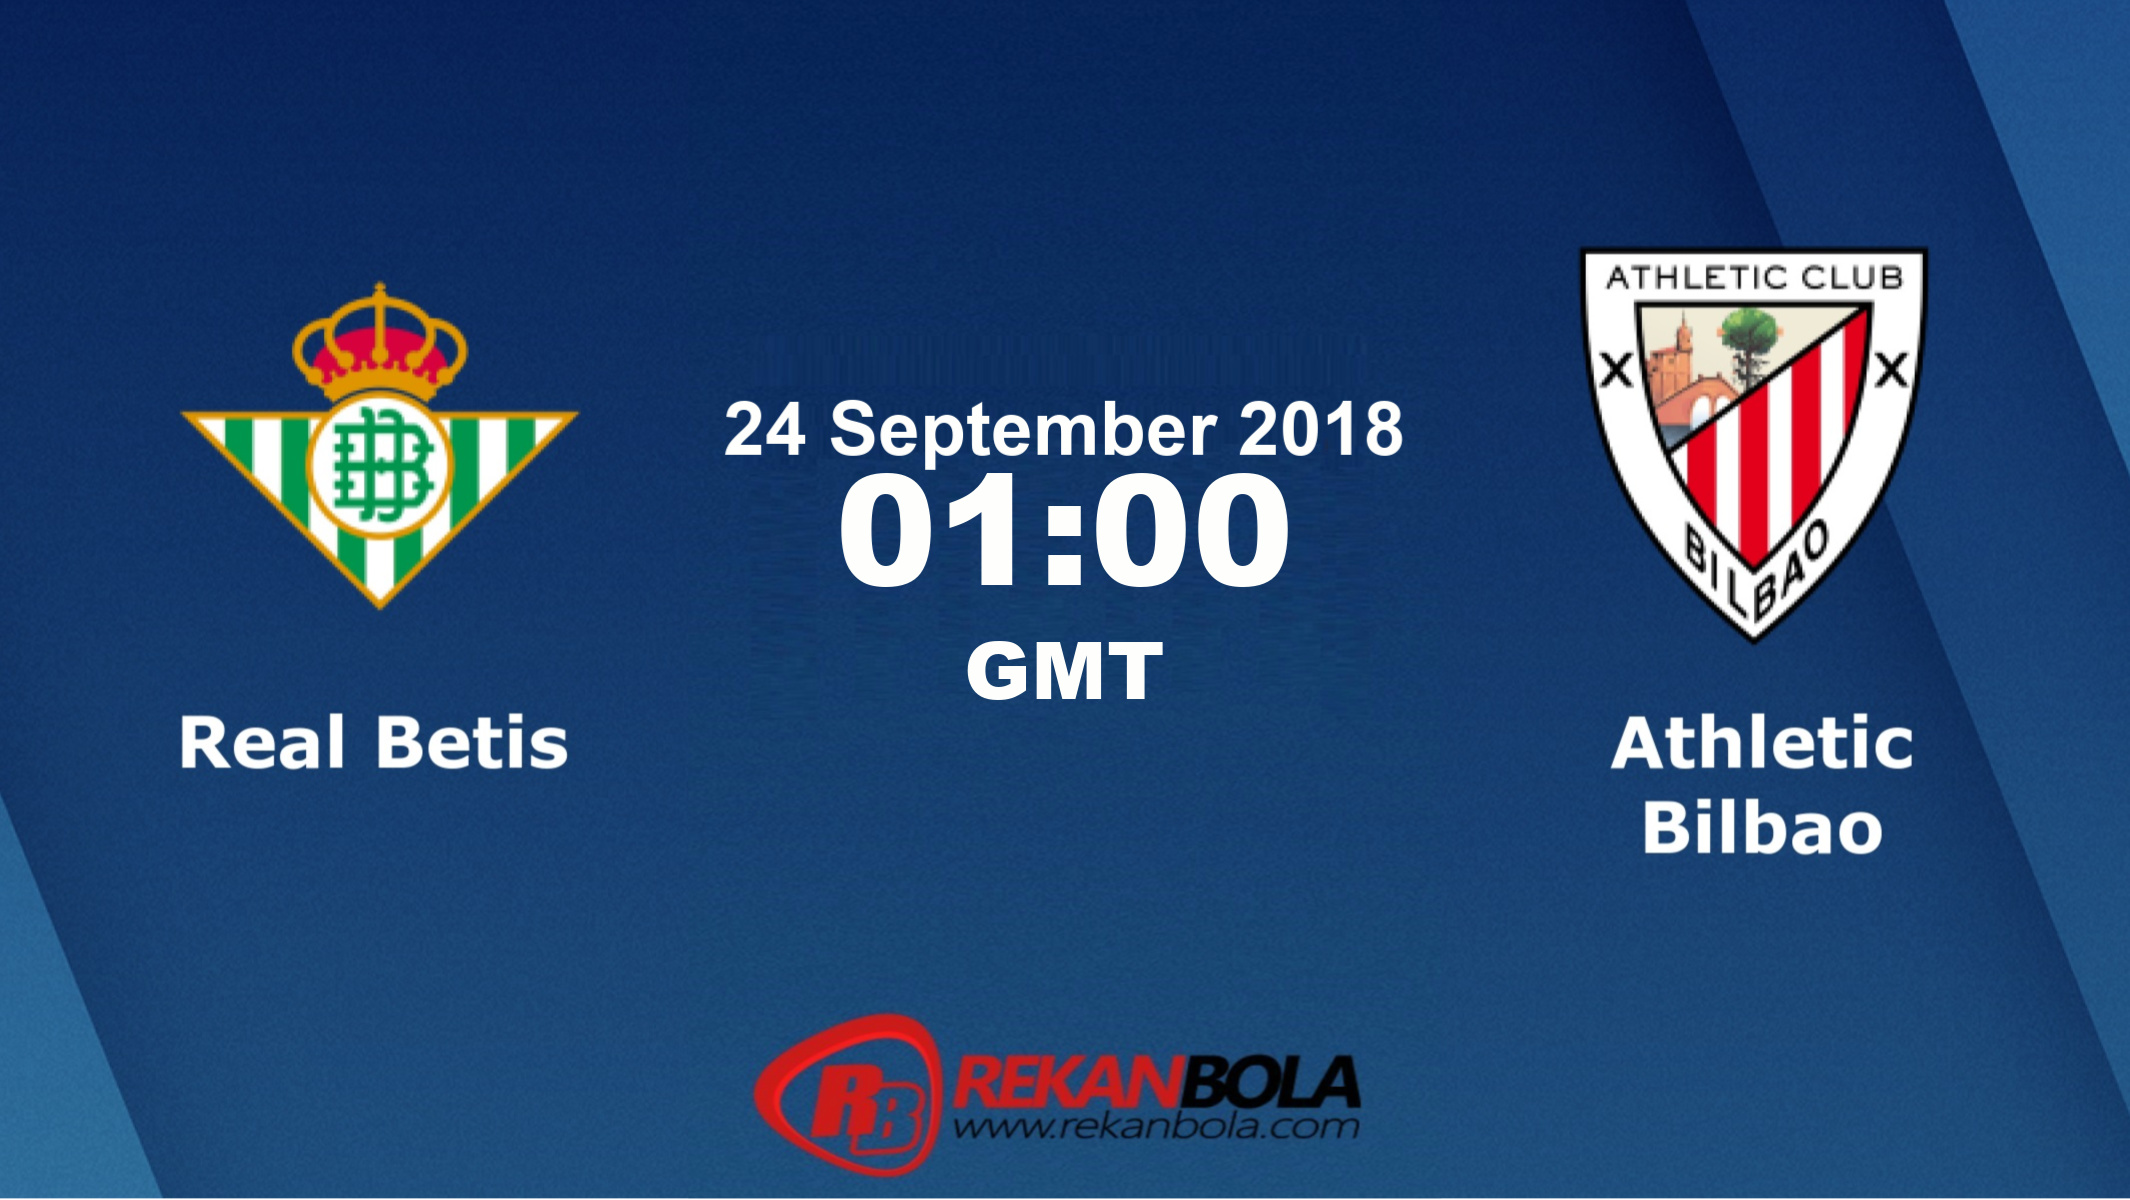 Nonton Siaran Live Streaming Betis Vs Bilbao 23 September 2018